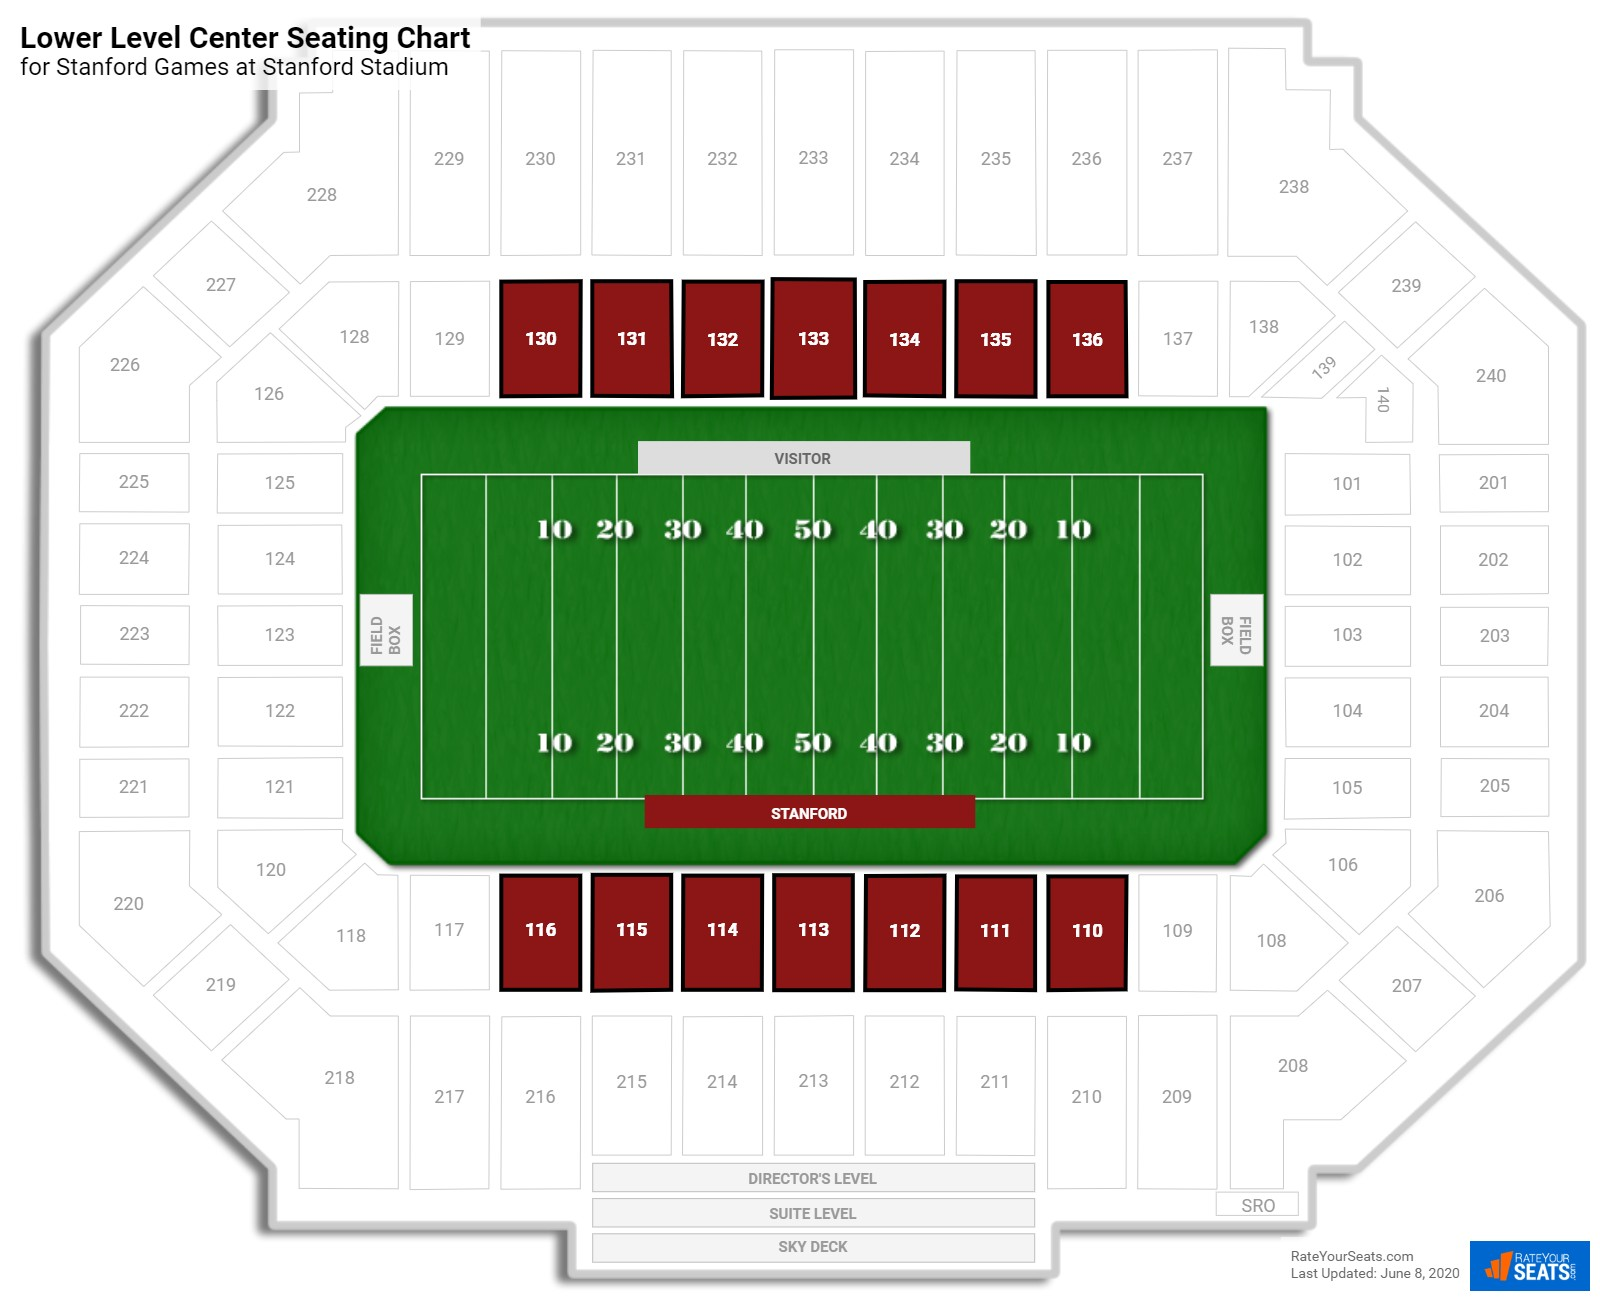 Stanford Stadium Lower Level Center seating chart